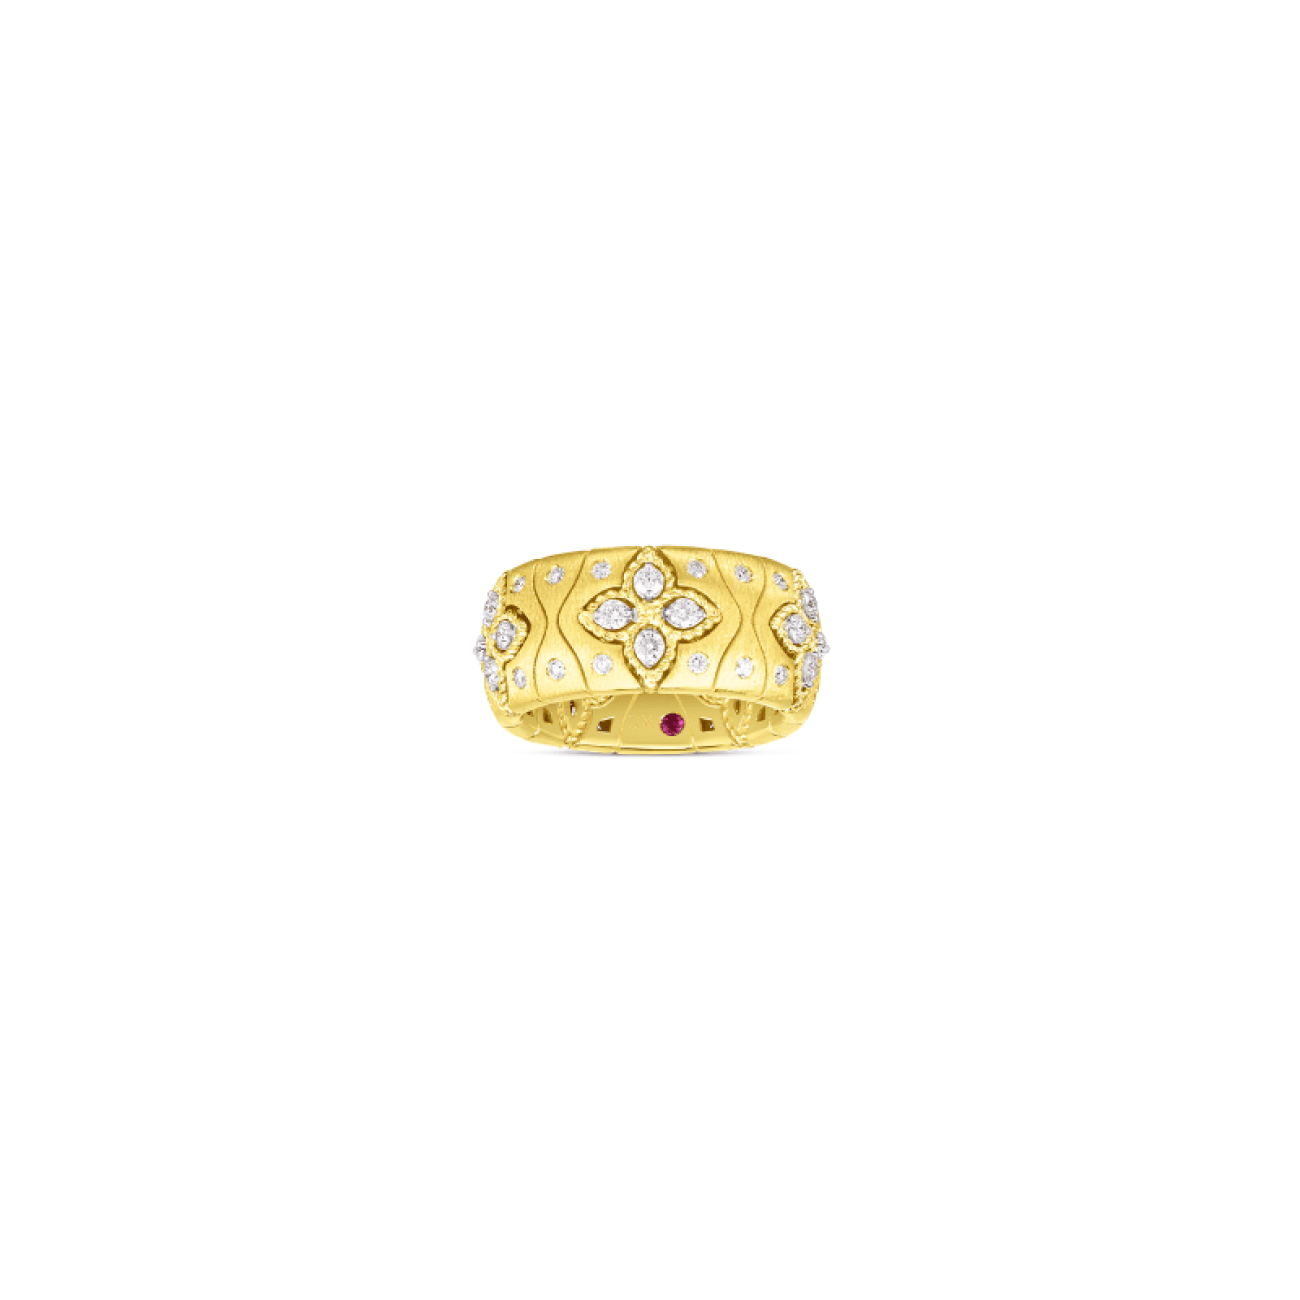 Roberto Coin Jewelry - 18K ROYAL PRINCESS FLOWER SATIN RING W. DIAMOND ACCENT | Manfredi Jewels